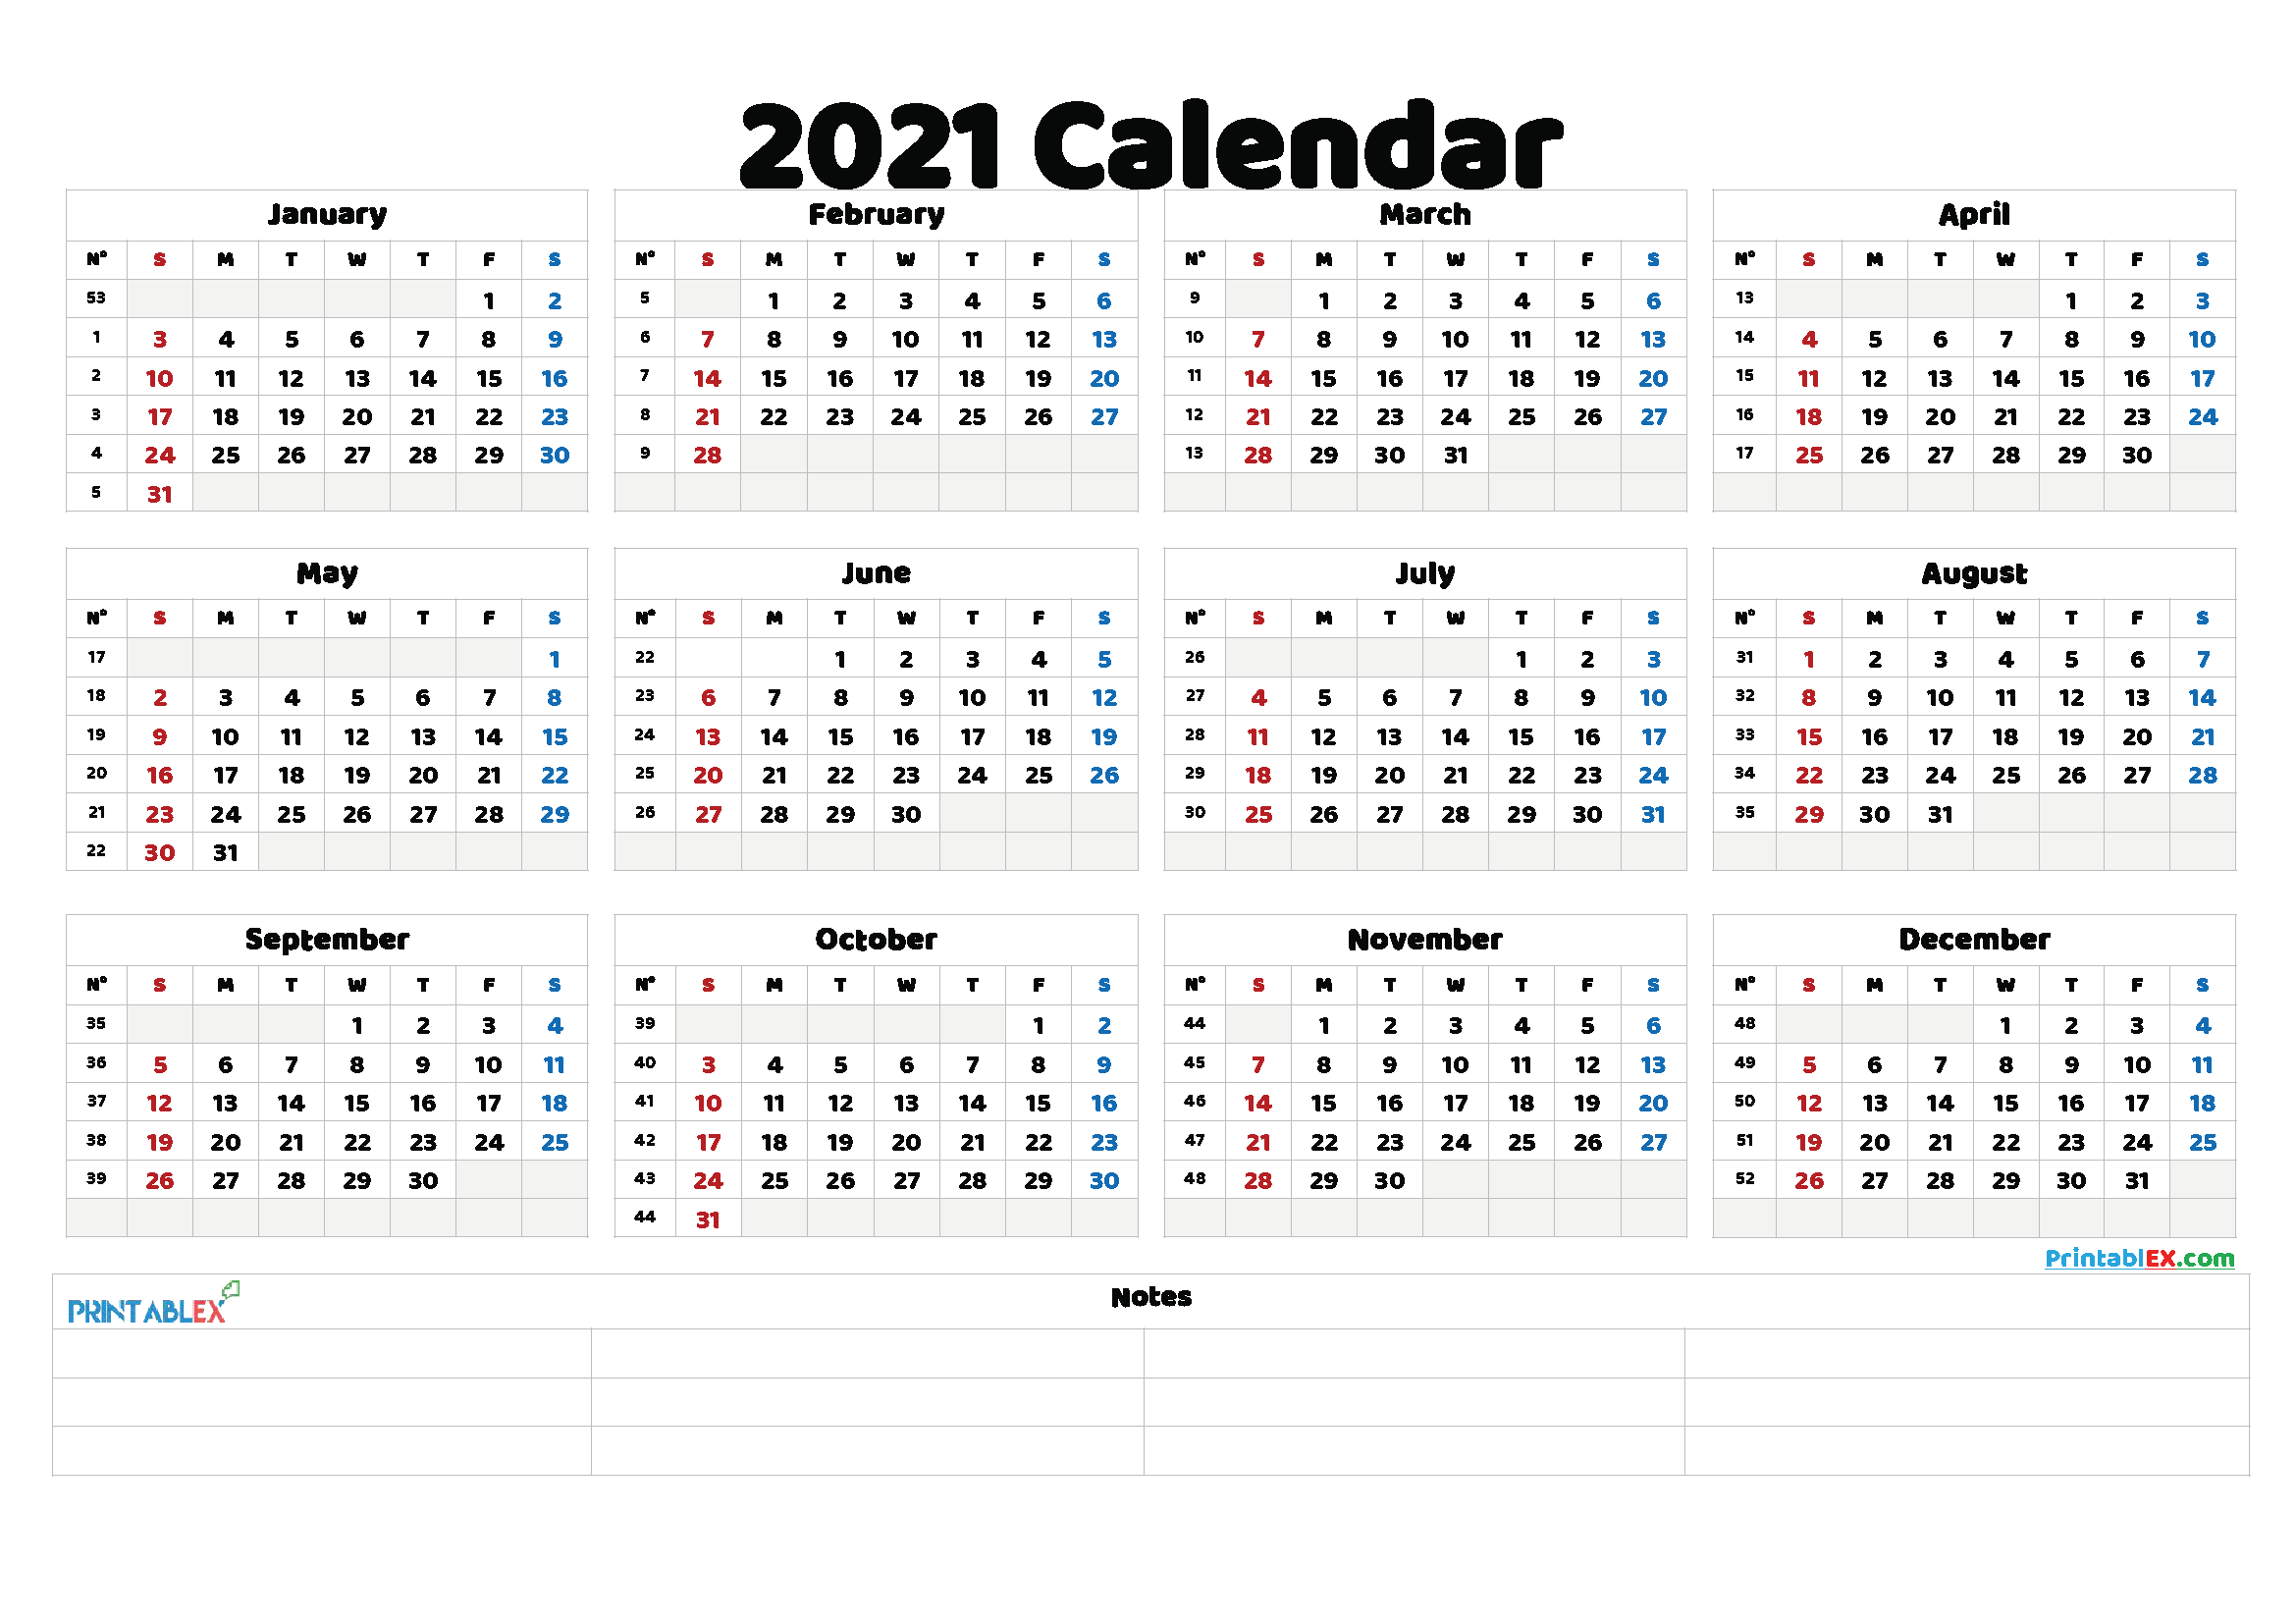 Free Printable 2021 Yearly Calendar 21ytw137 In 2020 Printable Yearly Calendar Calendar With Week Numbers Printable Calendar Template